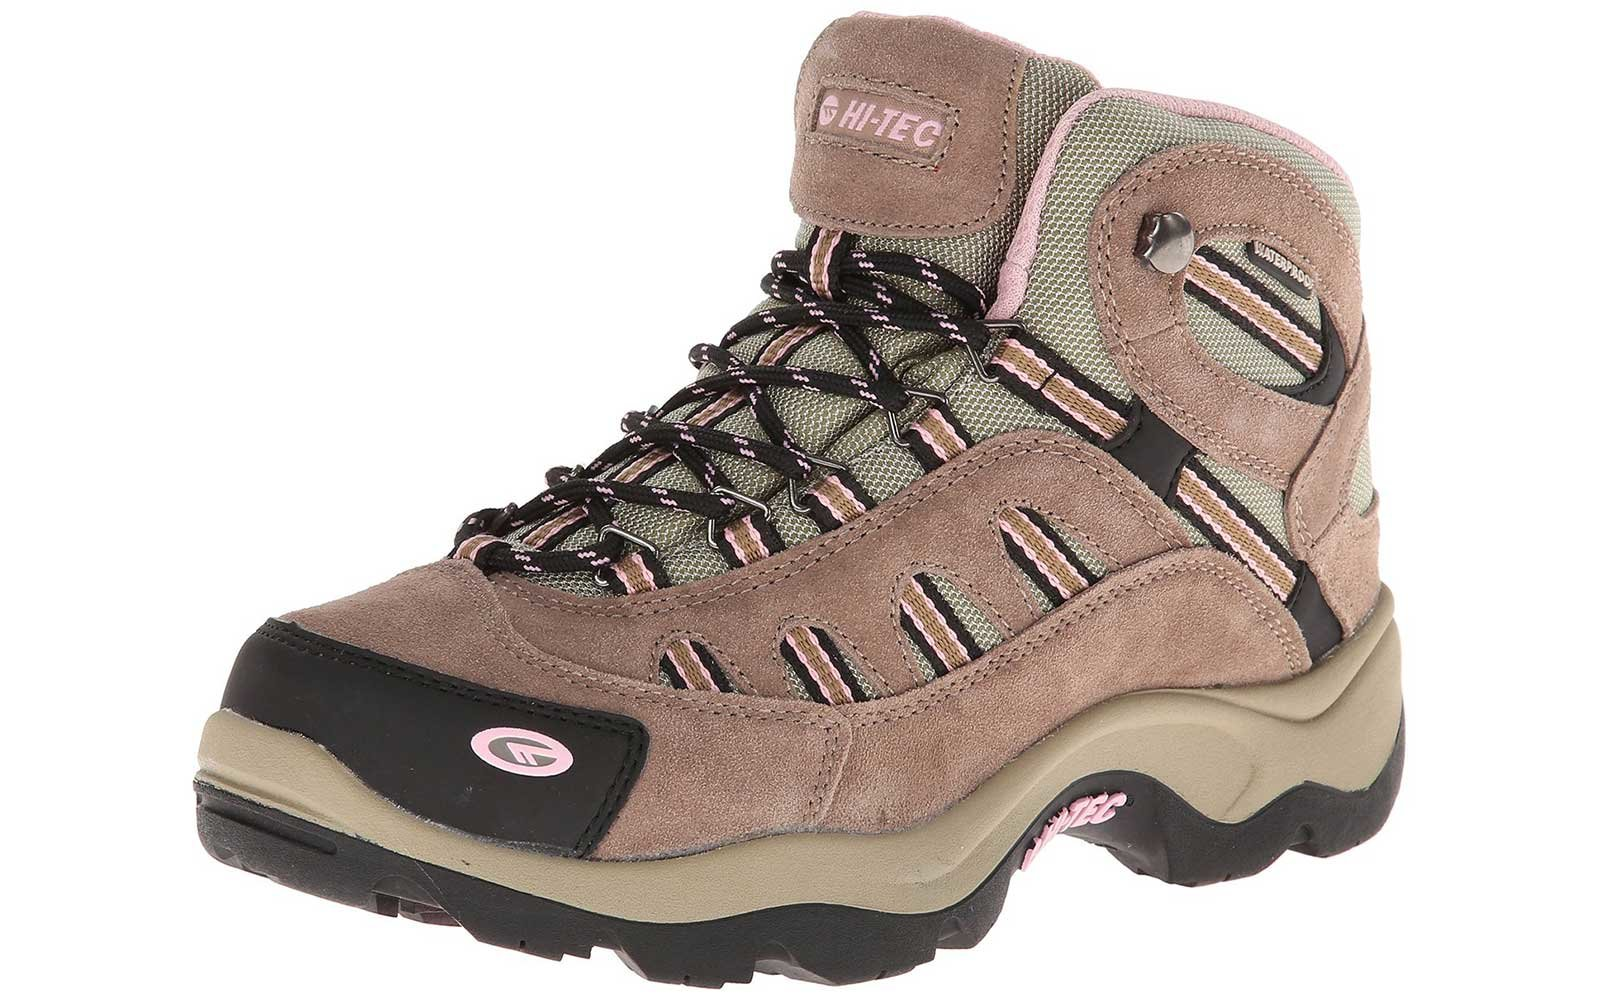 Hi-Tec women's hiking boot